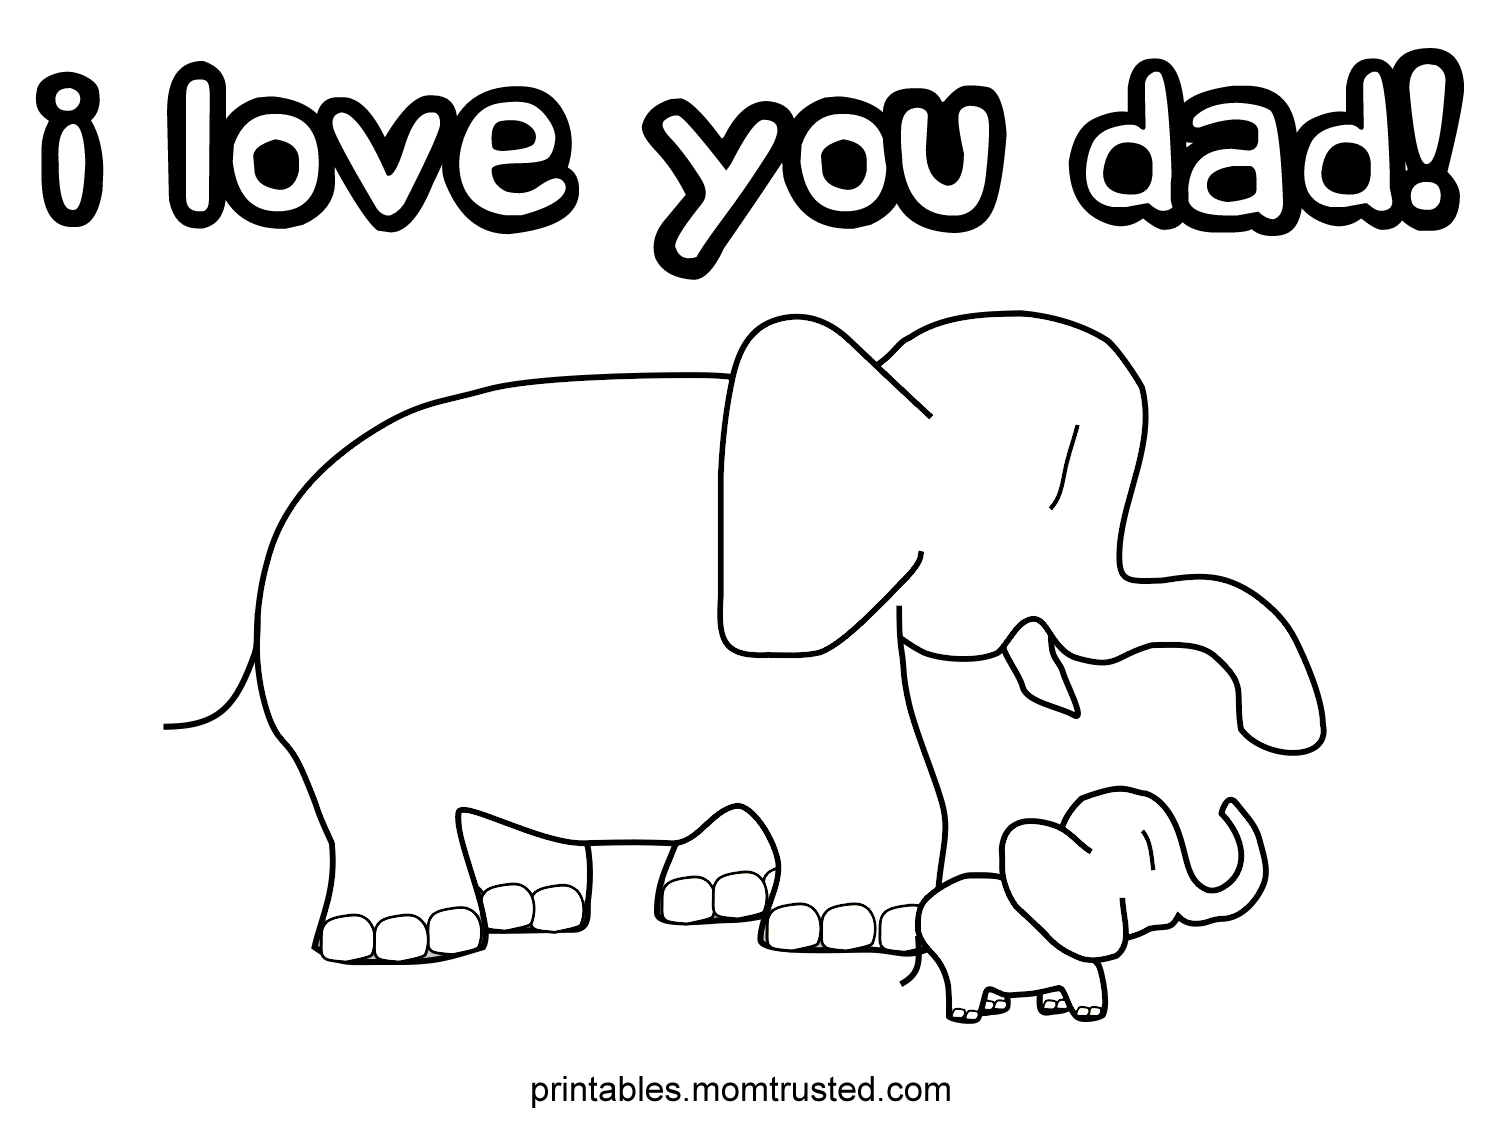 Free Printable Happy Fathers Day Coloring Pages - | Father's Day - Free Printable Fathers Day Coloring Pages For Grandpa